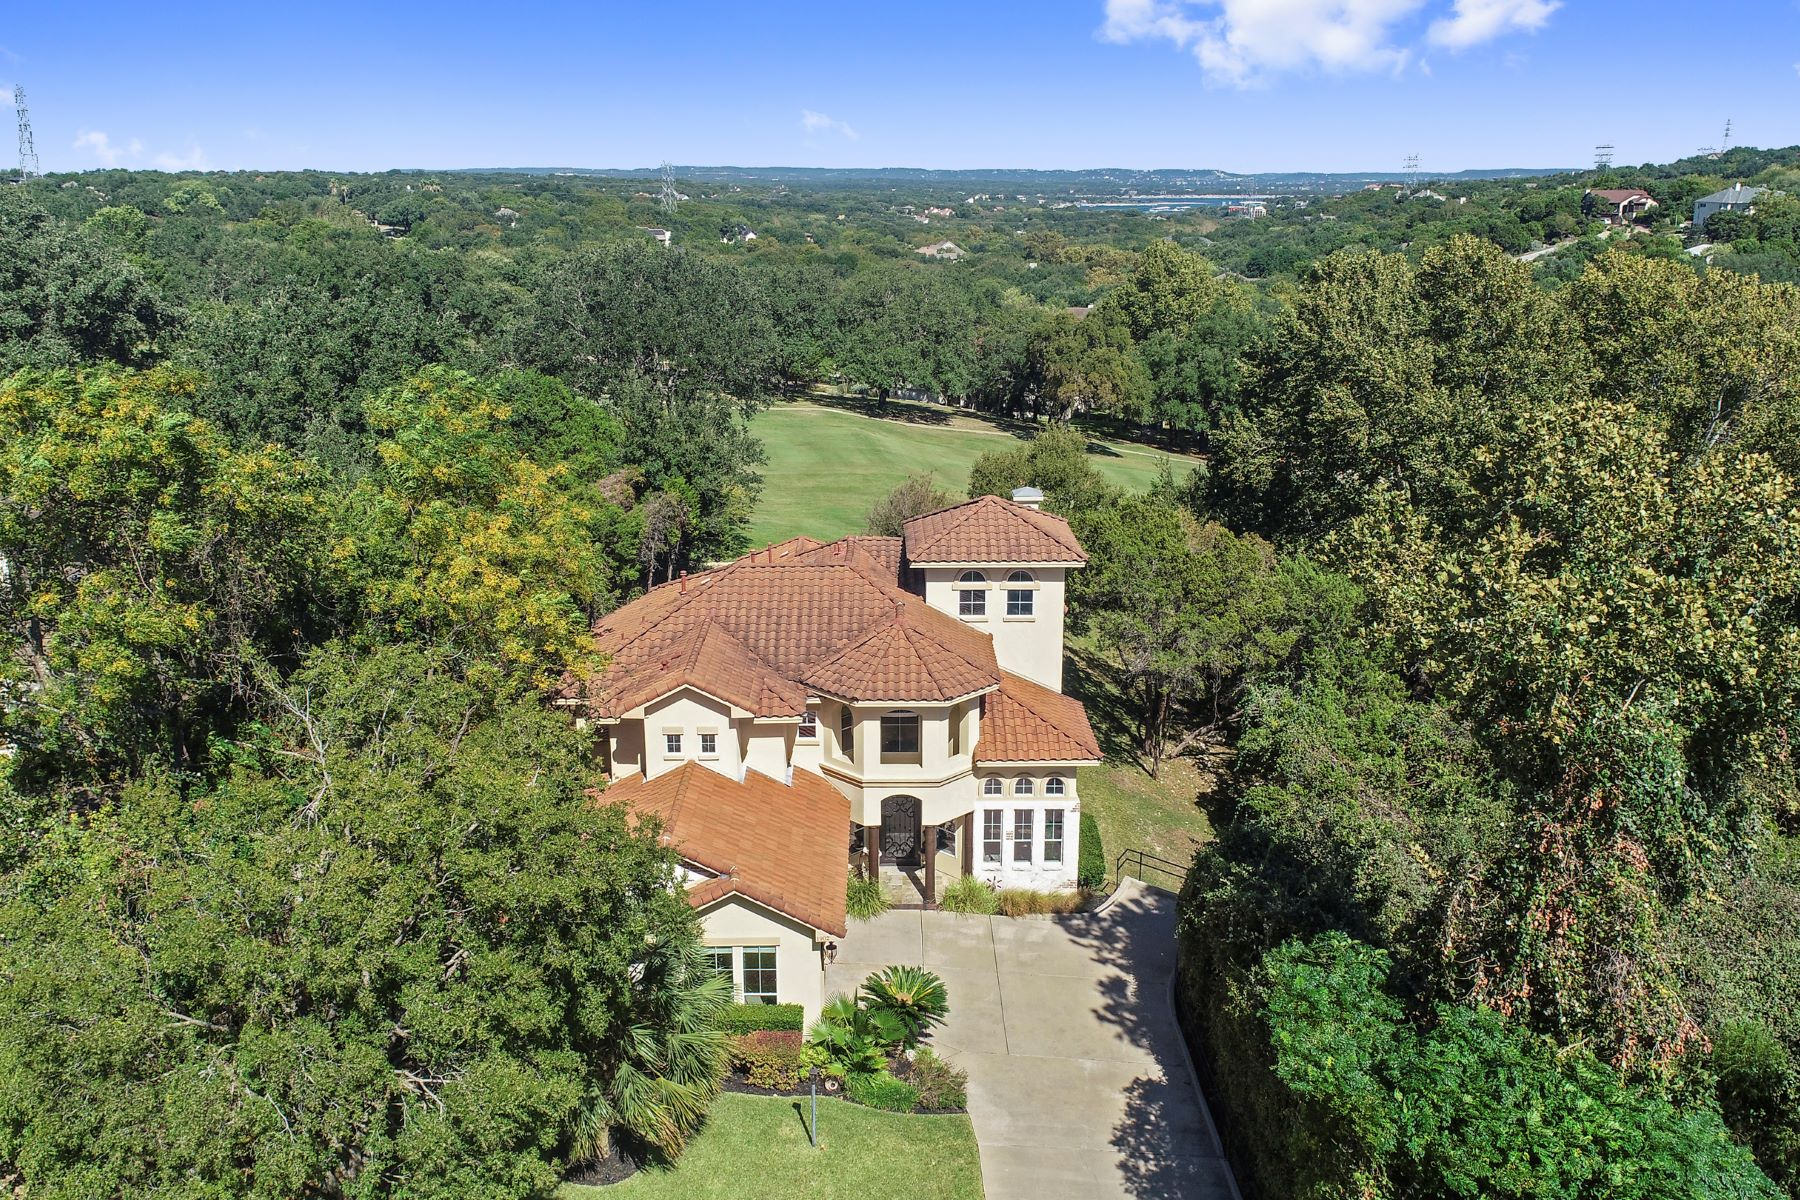 Single Family Homes for Sale at 1902 Lakeway Boulevard, Lakeway, TX 78734 1902 Lakeway Boulevard Lakeway, Texas 78734 United States